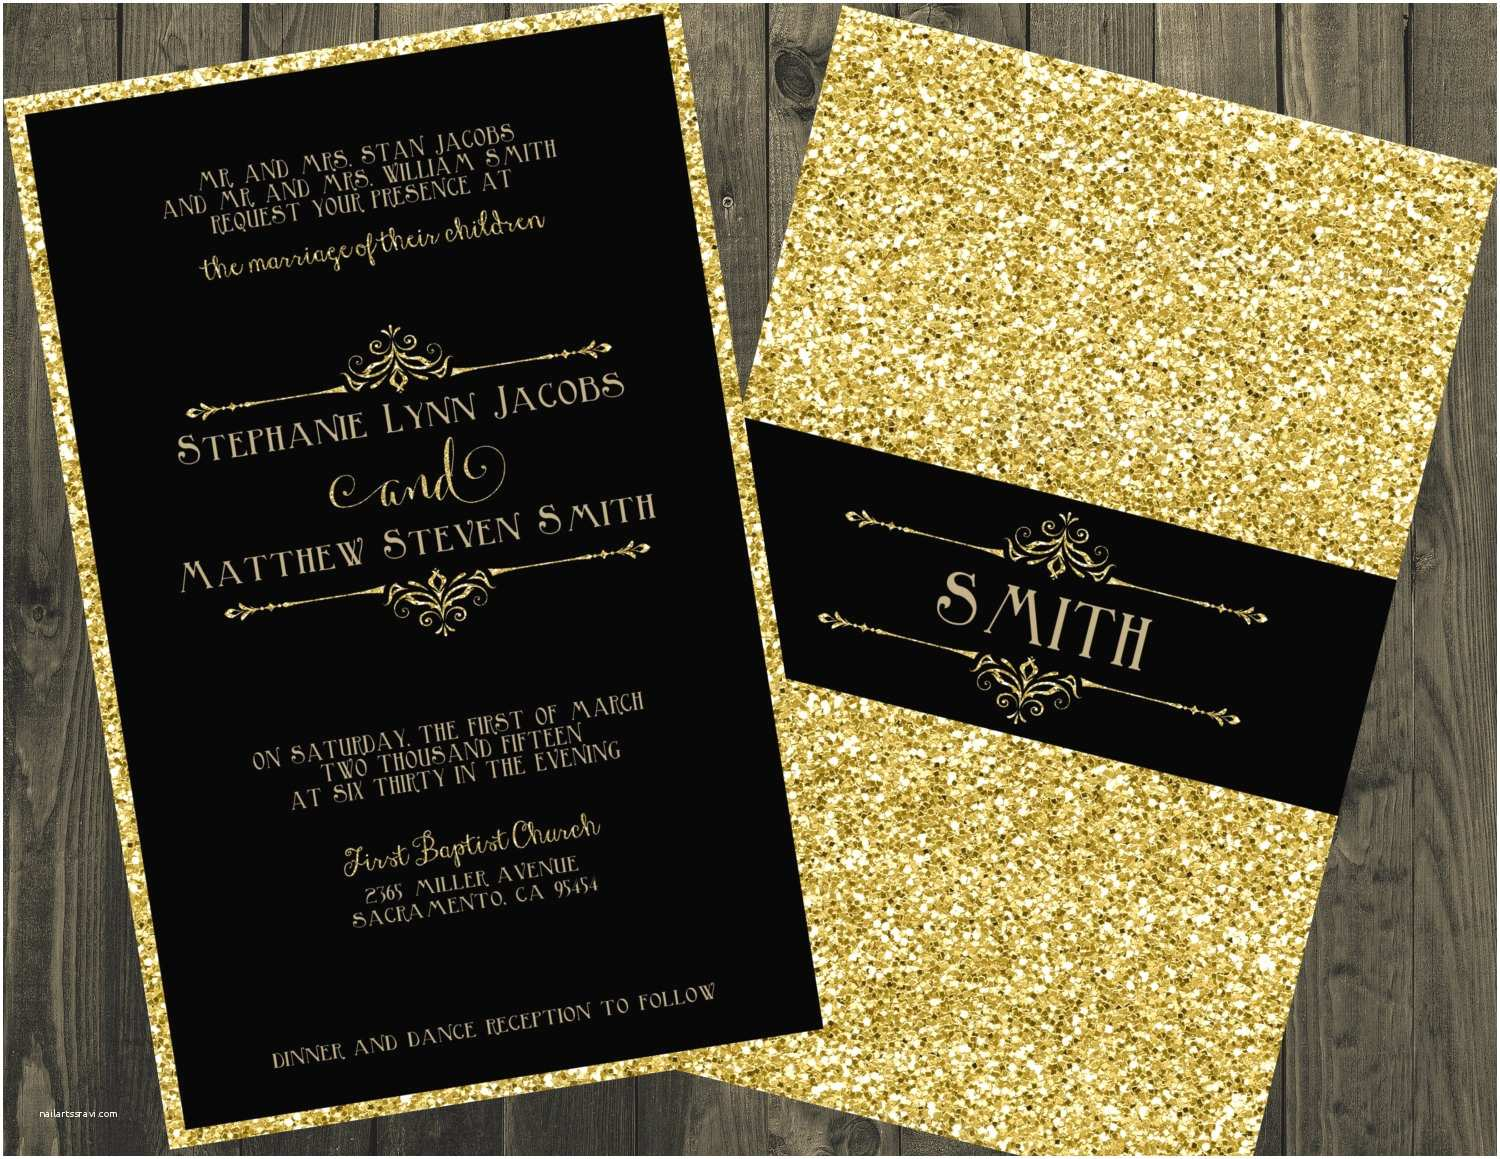 Gold Sparkle Wedding Invitations Black and Gold Wedding Invitation Glitter Wedding